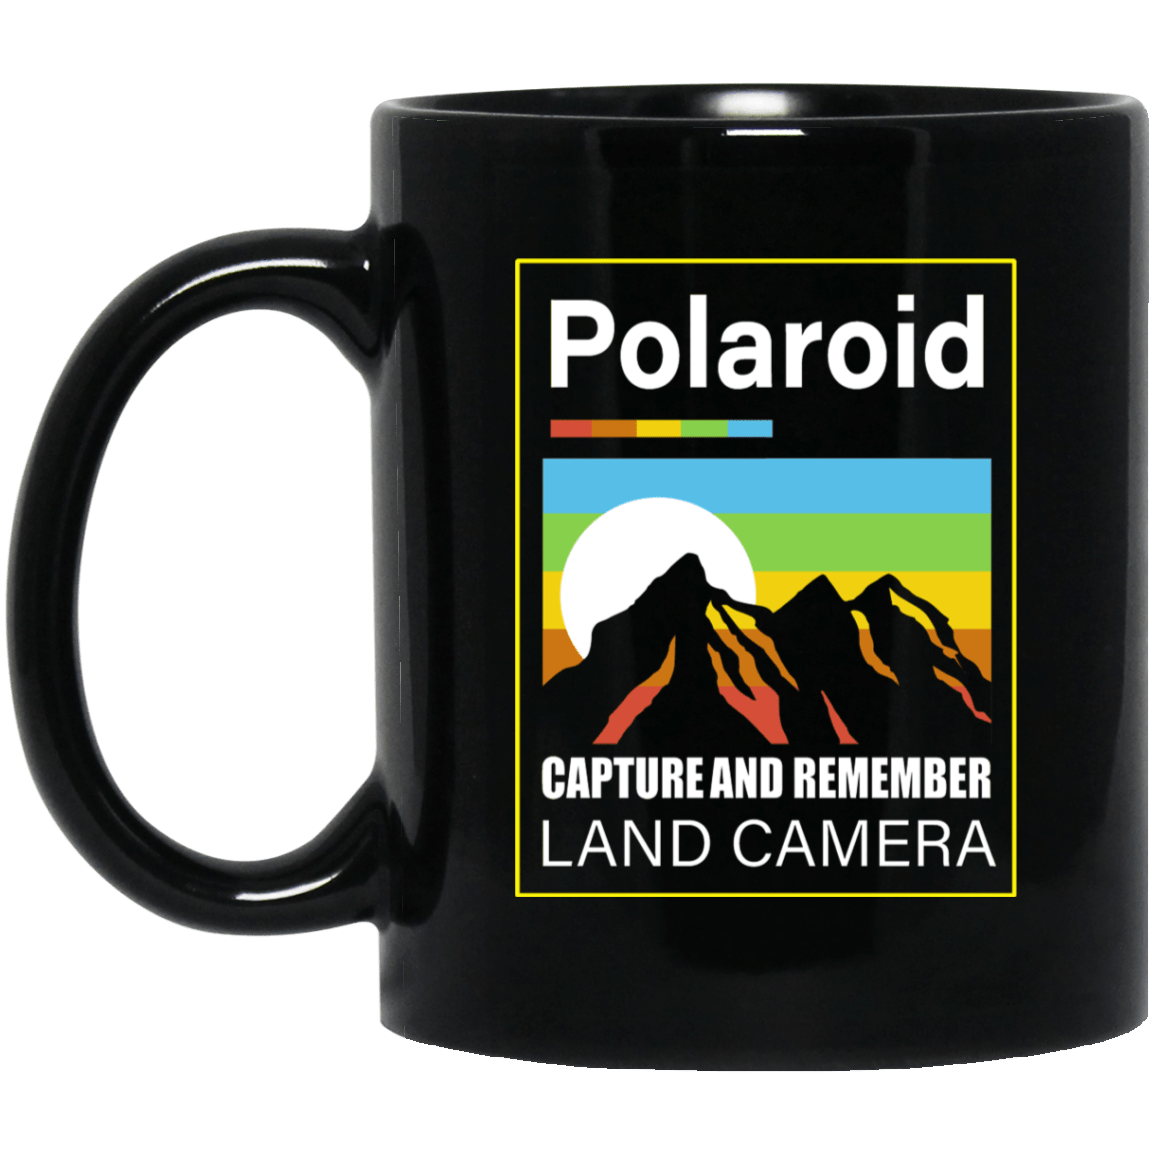 Polaroid Capture And Remember Land Camera Black Mug 1065-10181-93051320-49307 - Tee Ript